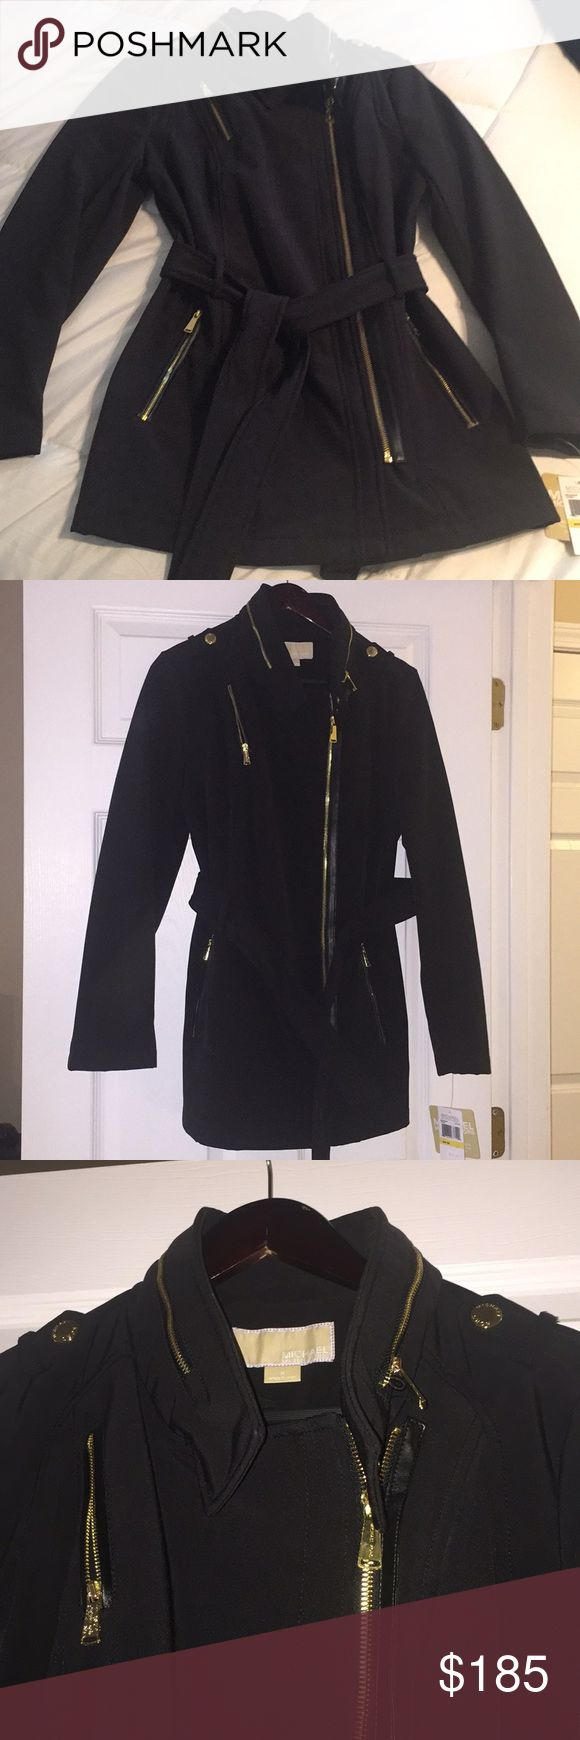 Michael Kors Black Water Resist Coat - Size M NWT Michaels Kors Black Pea Coat Water Resistant  New with Tags  Black with gold hardware  Size: Medium Michael Kors Jackets & Coats Pea Coats